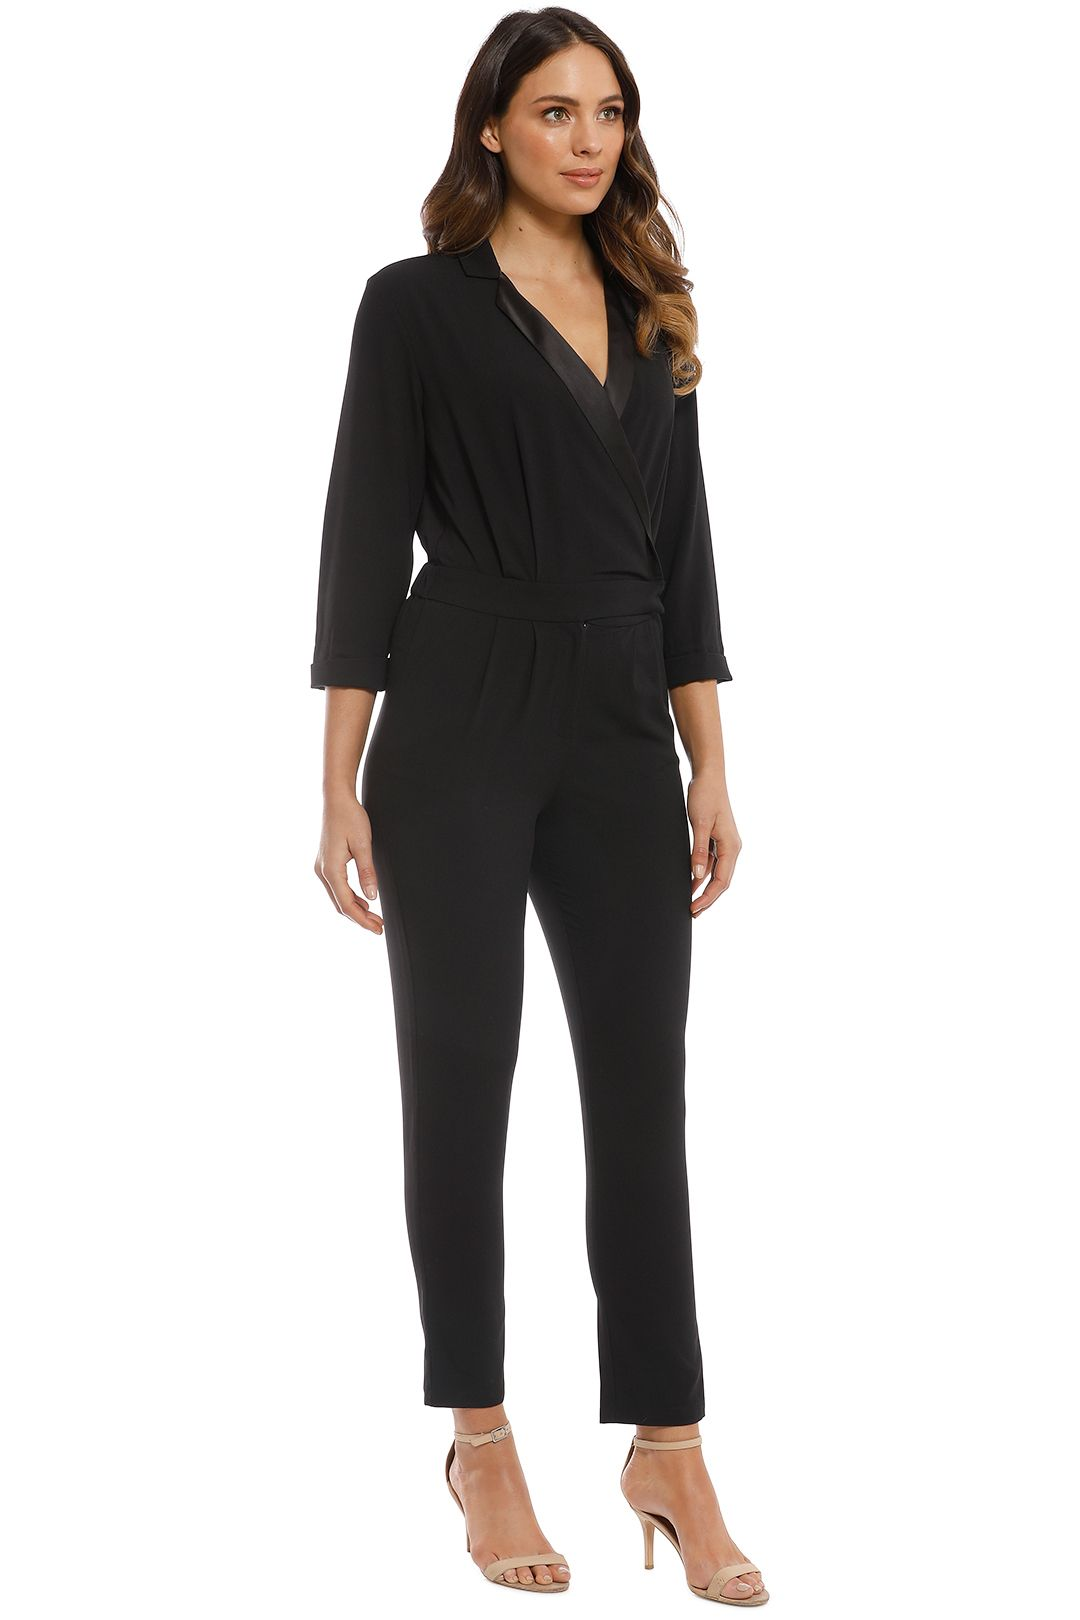 Iris and Ink - Liberty Crepe Jumpsuit - Black - Side